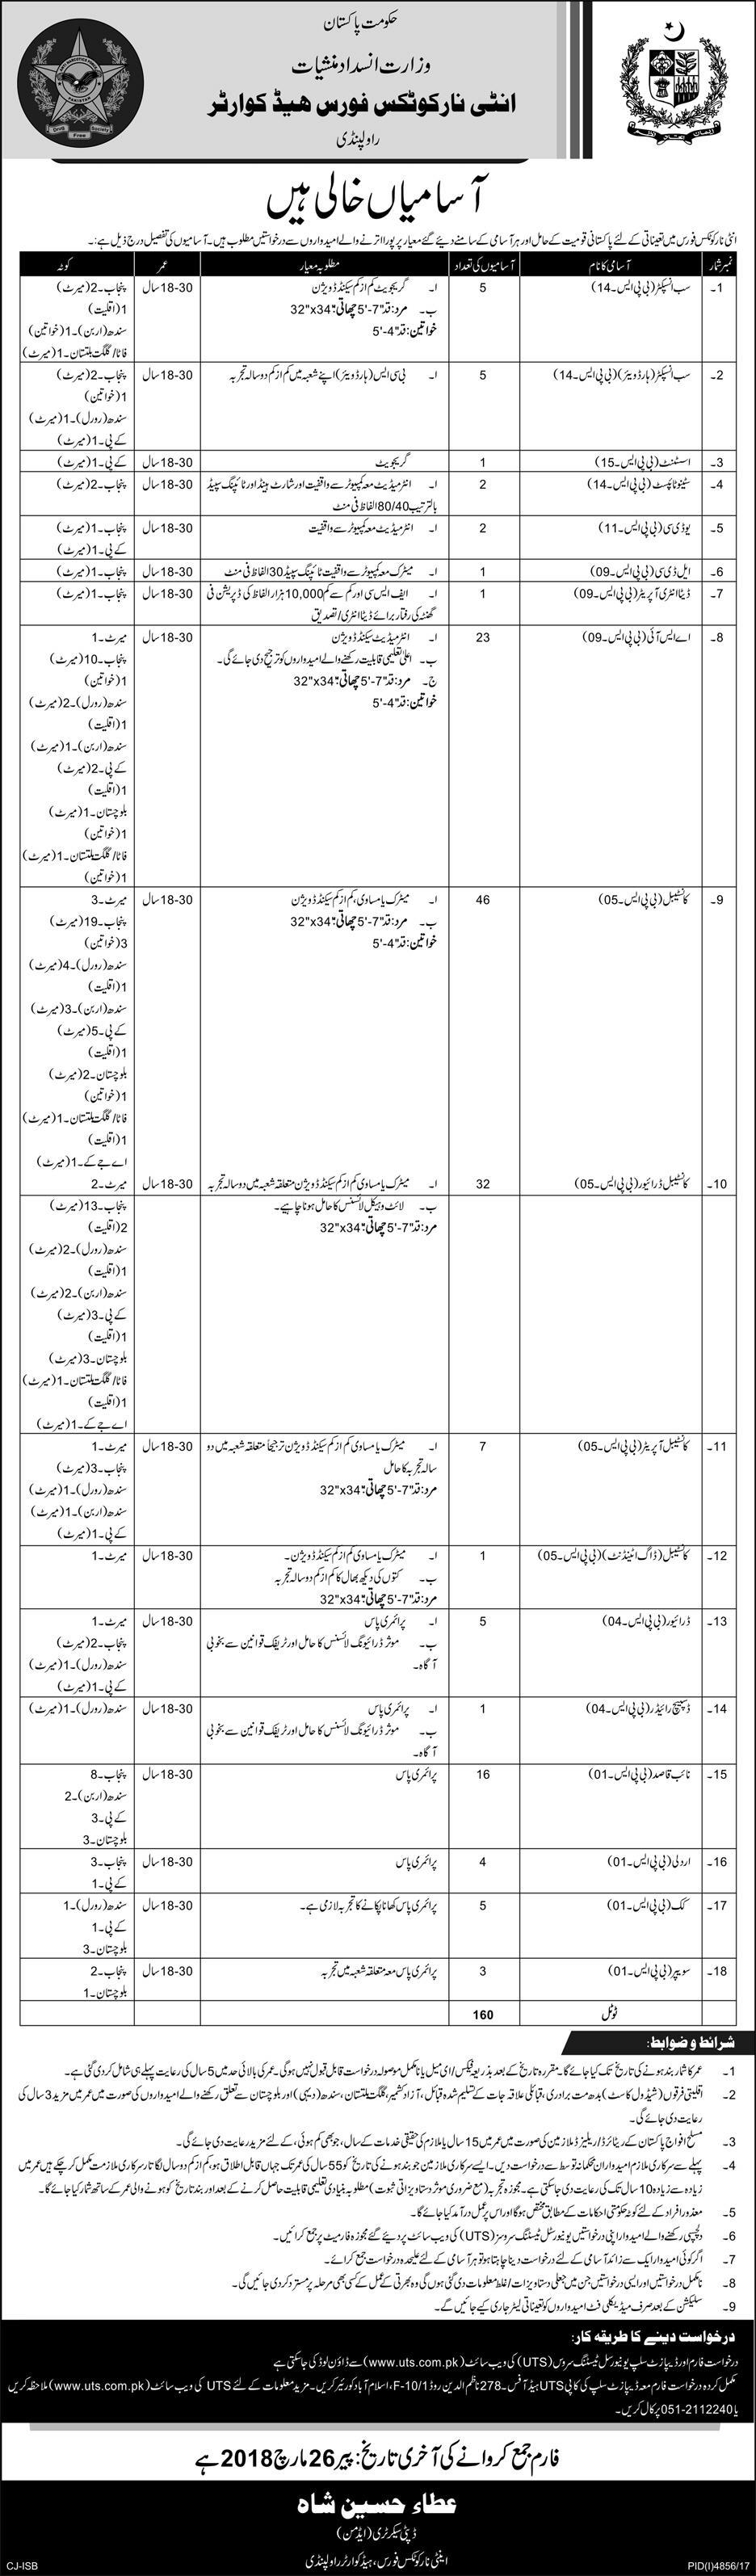 Anti Narcotics Force ANF Headquarter Jobs 2018